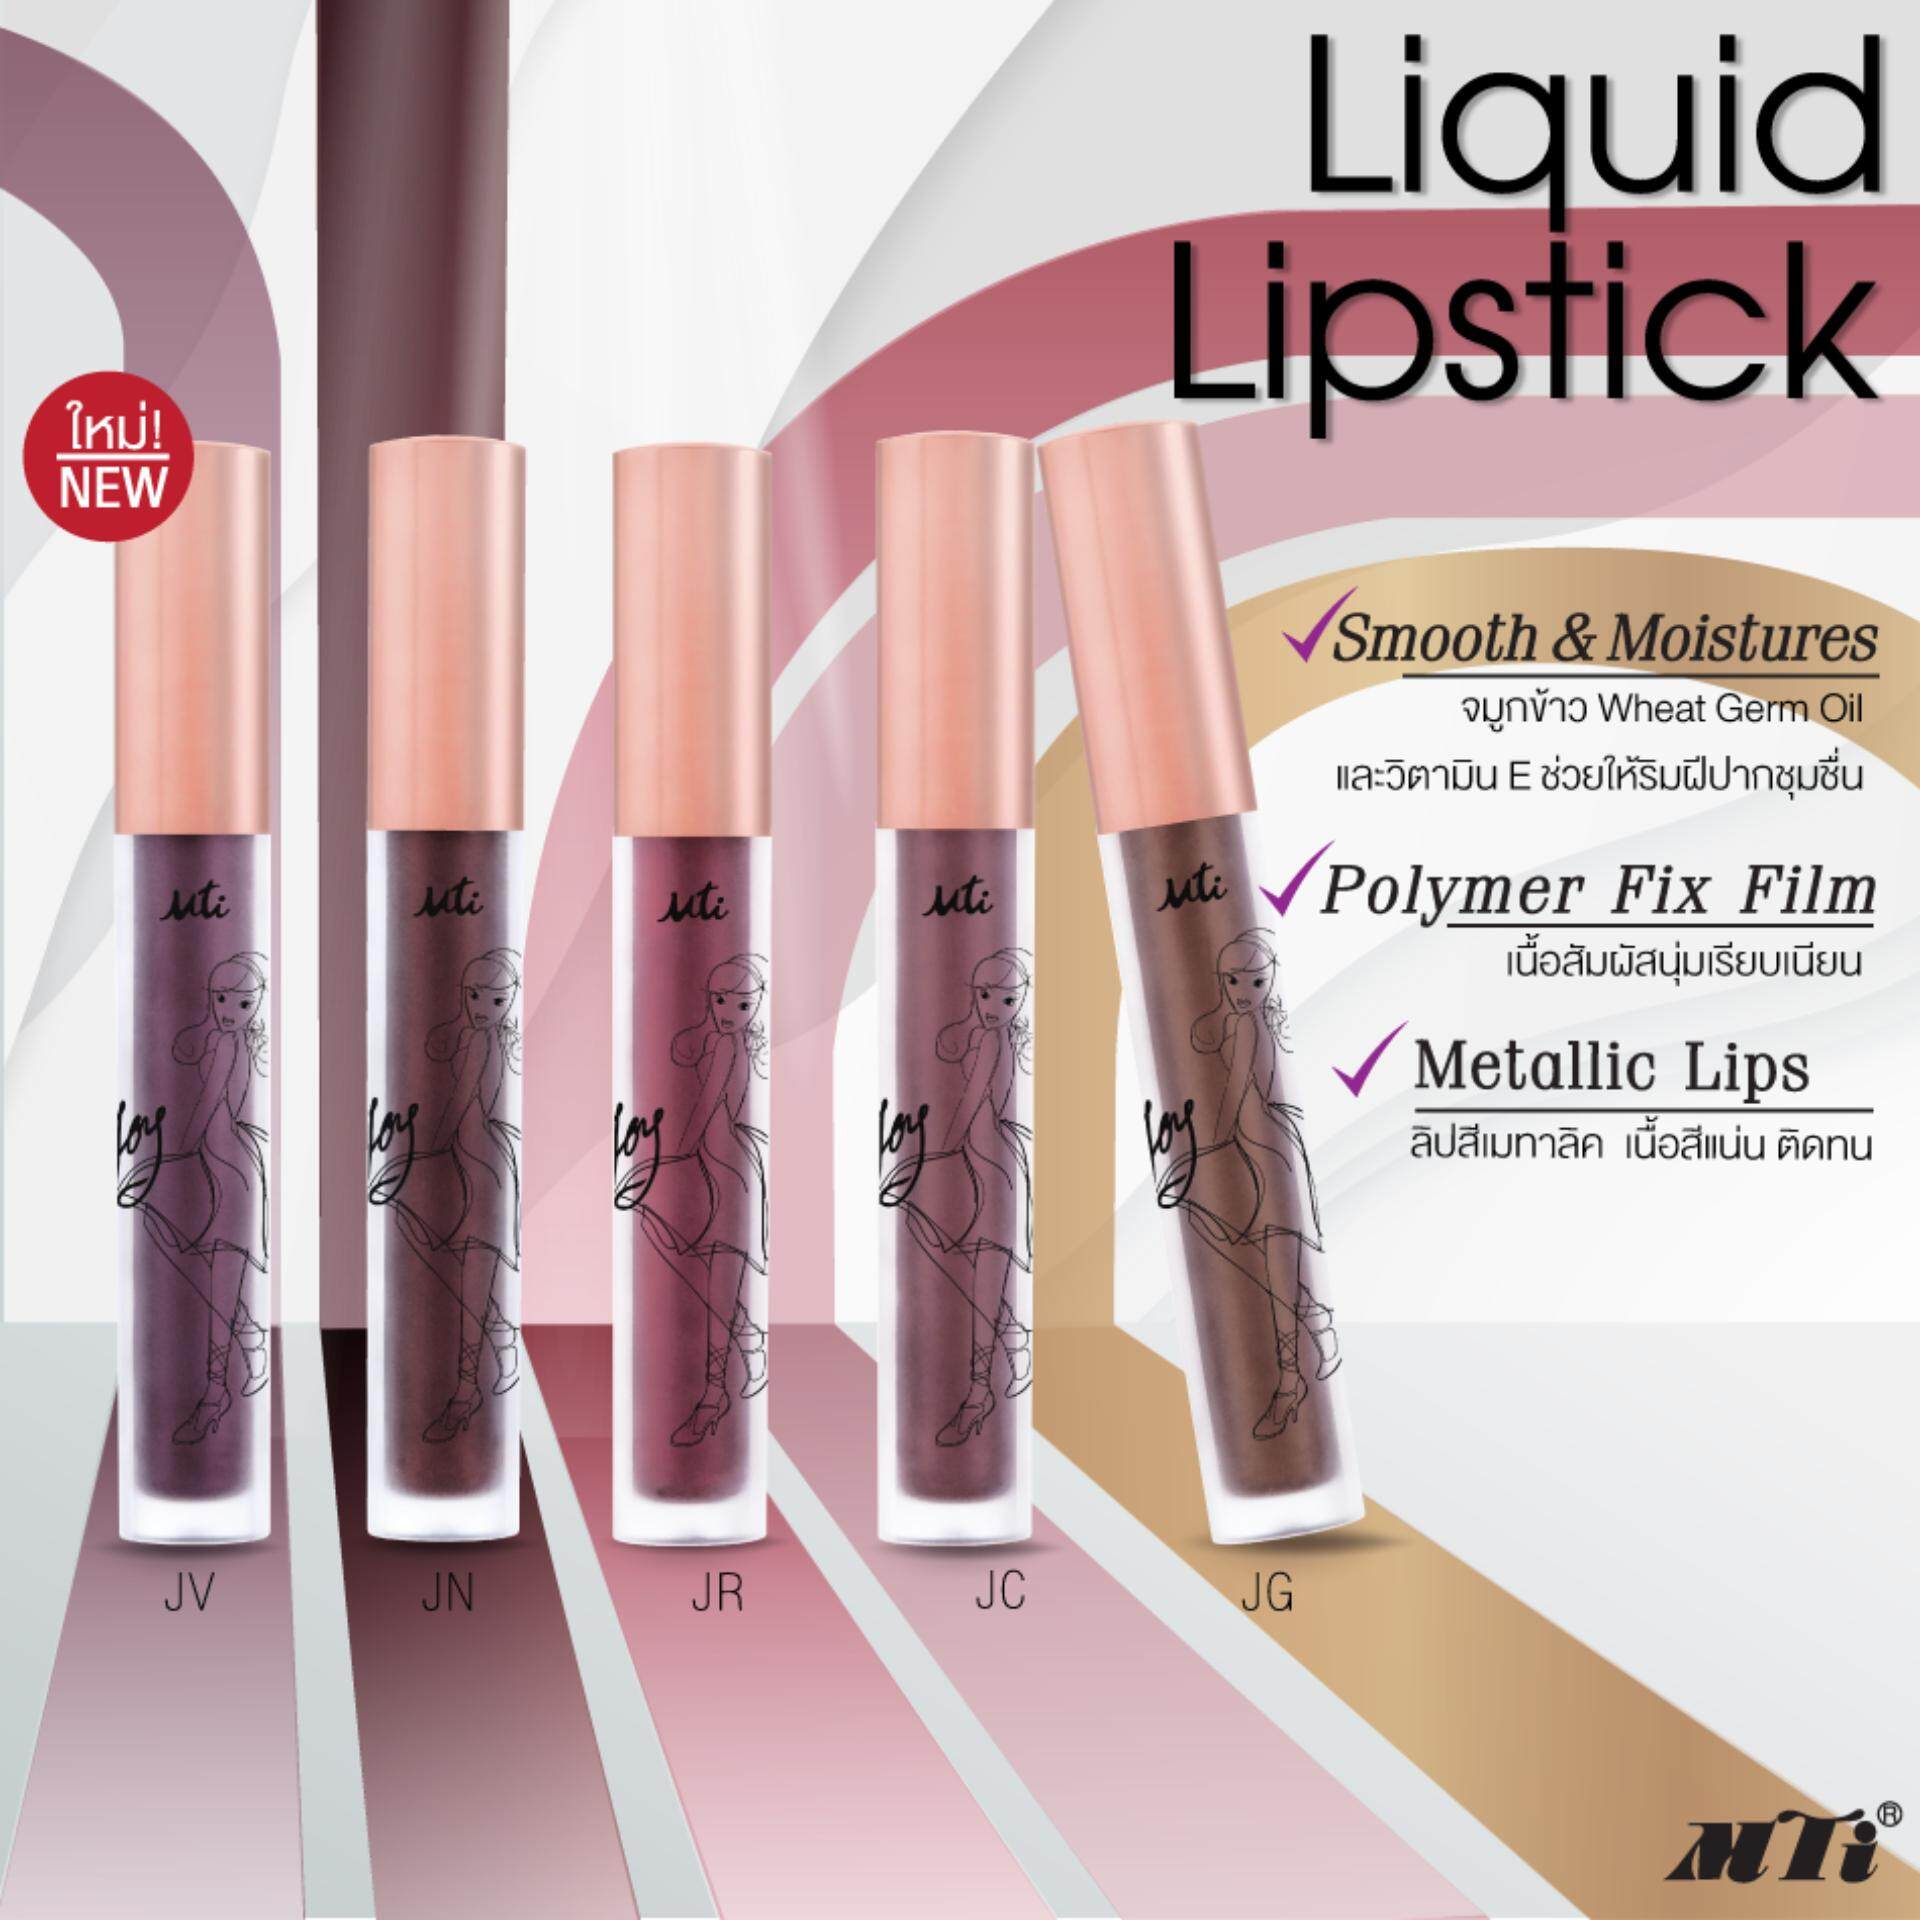 MTI JOY LIQUID LIPSTICK